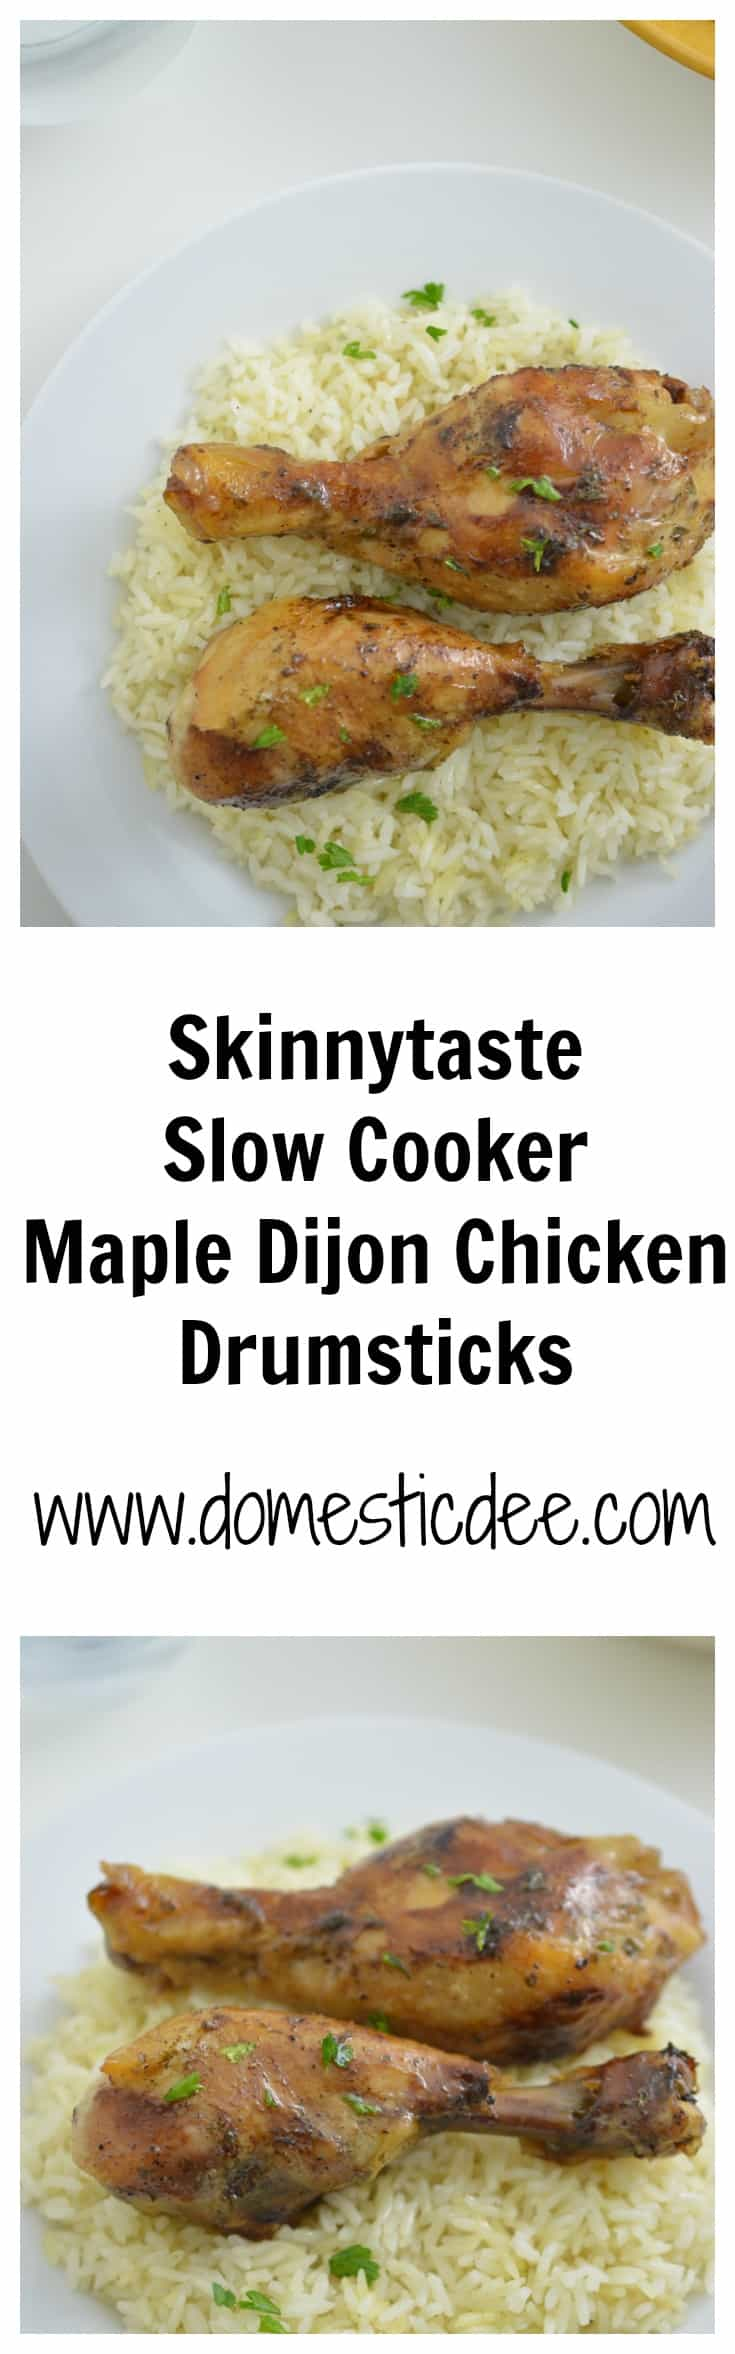 Skinnytaste Slow Cooker Maple Dijon Chicken Drumsticks-This delicious maple dijon chicken is cooked in the slow cooker